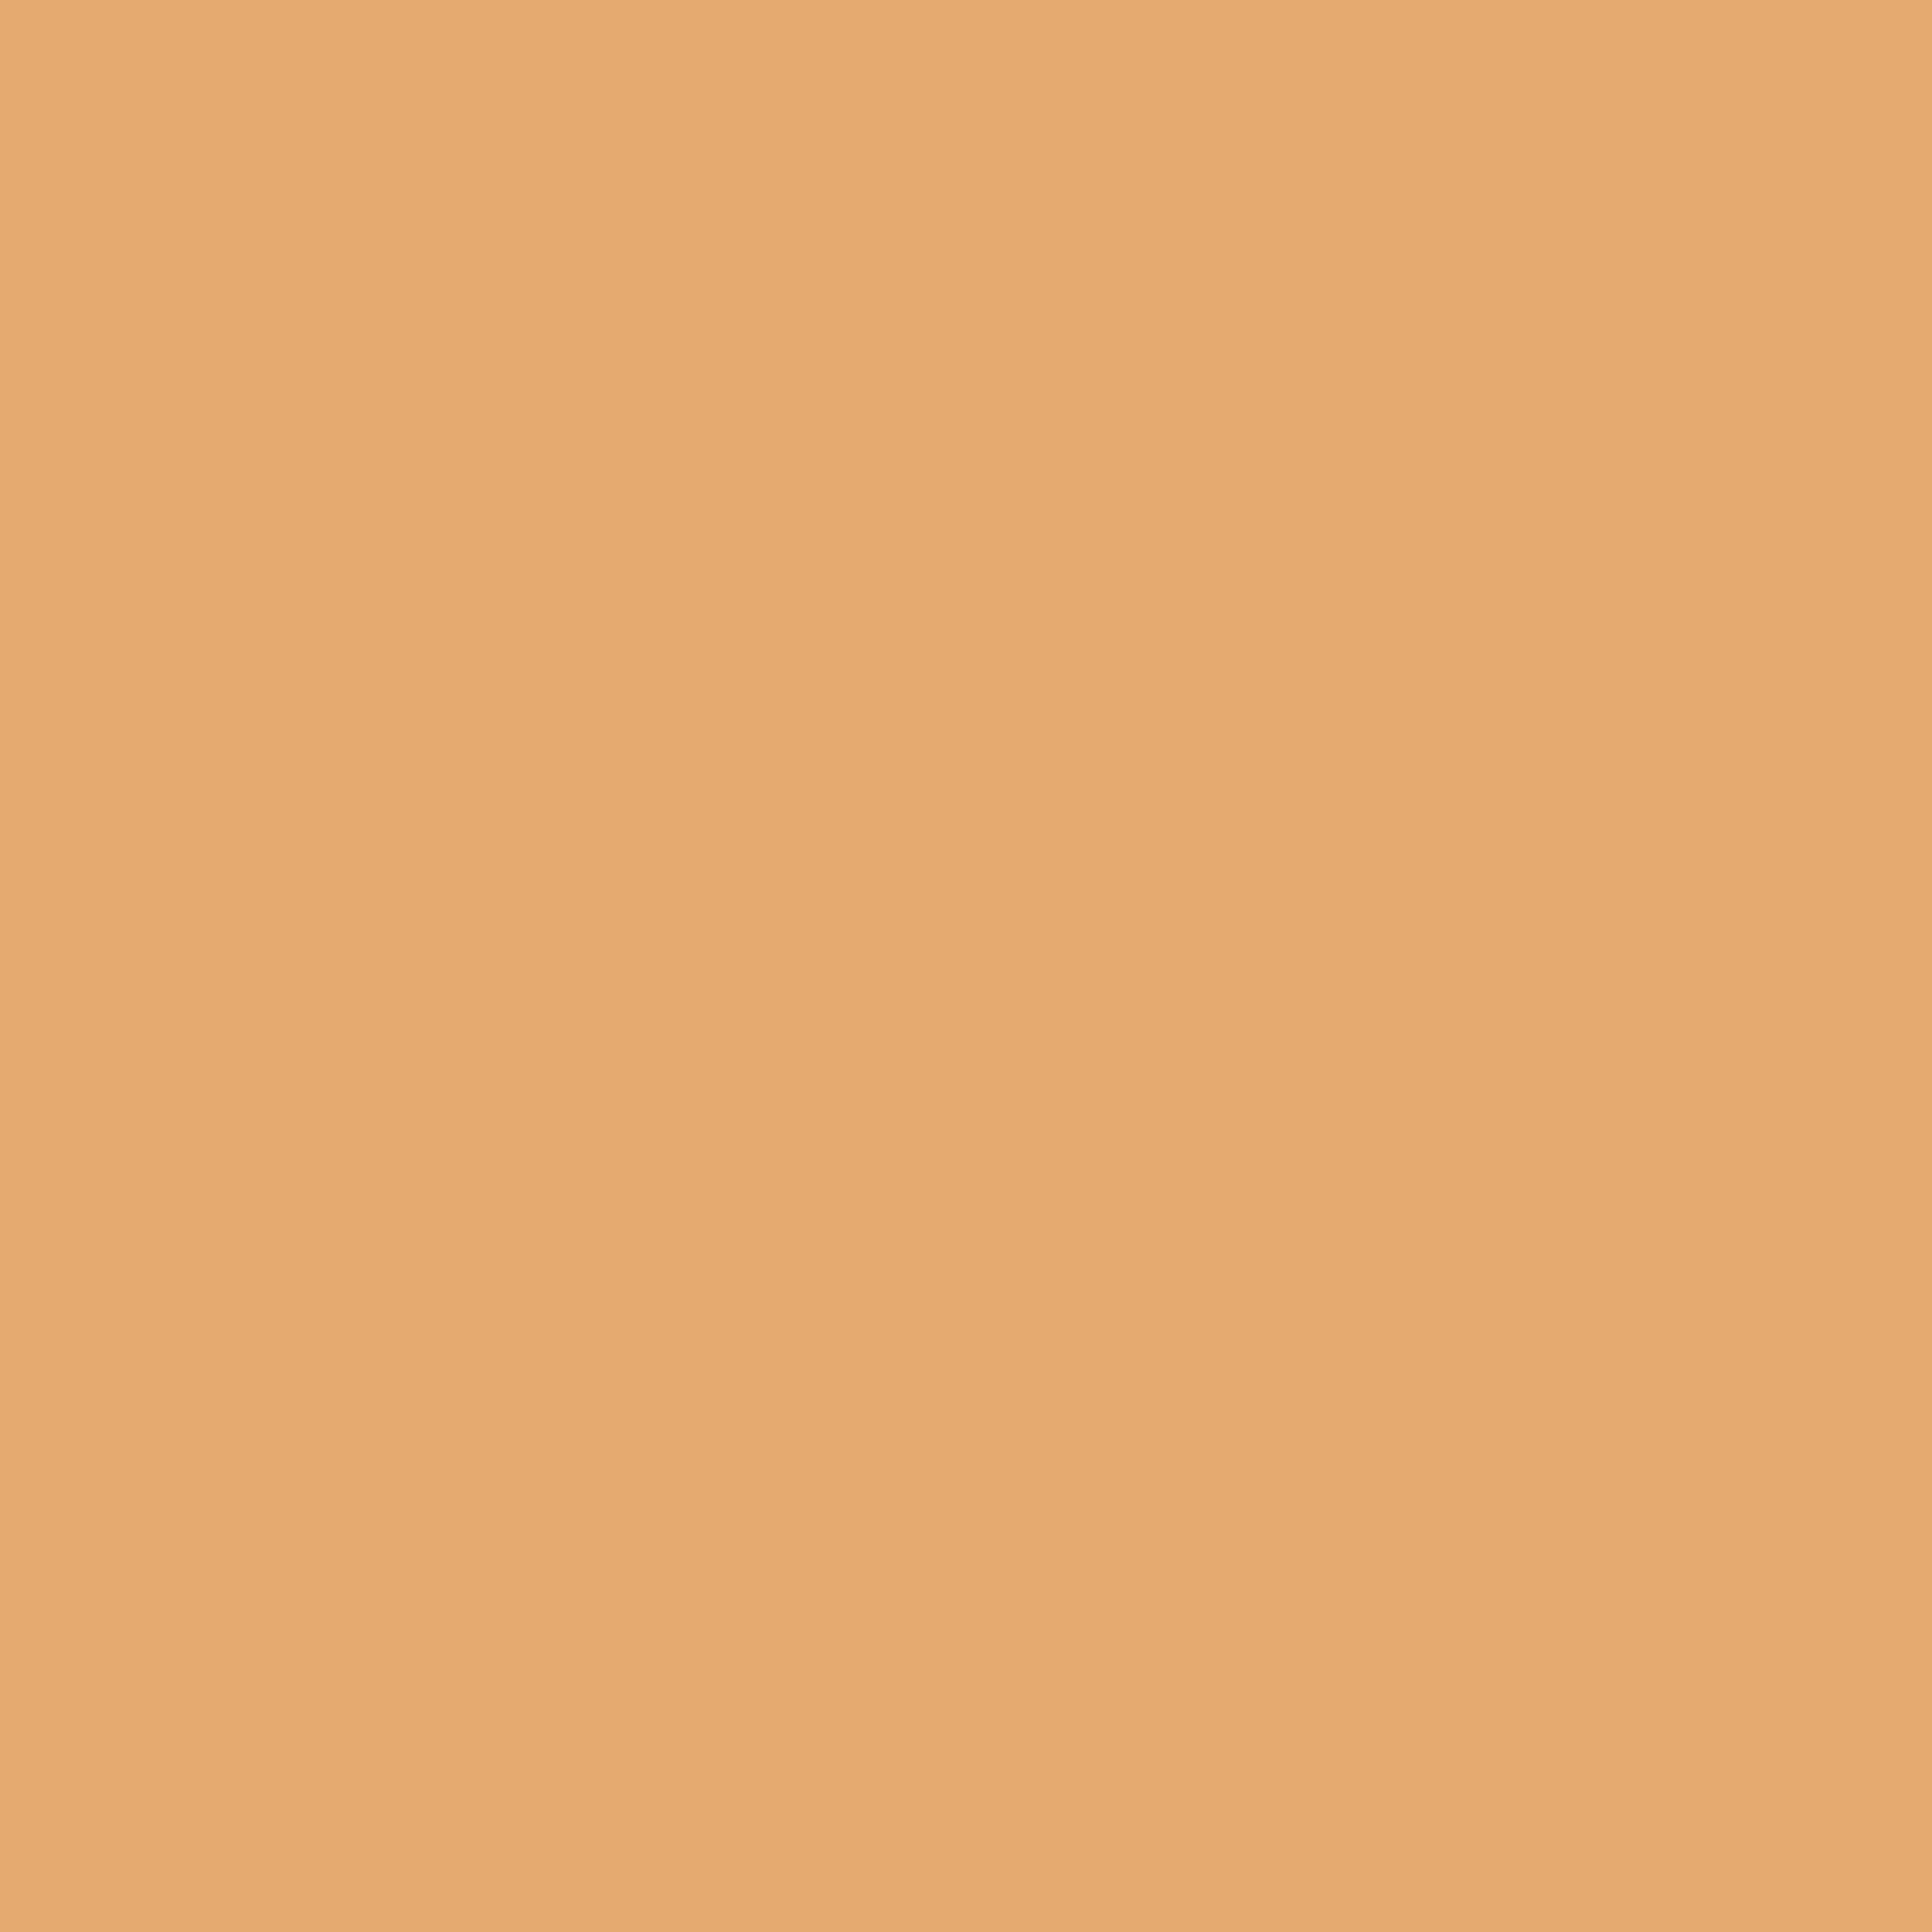 2048x2048 Fawn Solid Color Background